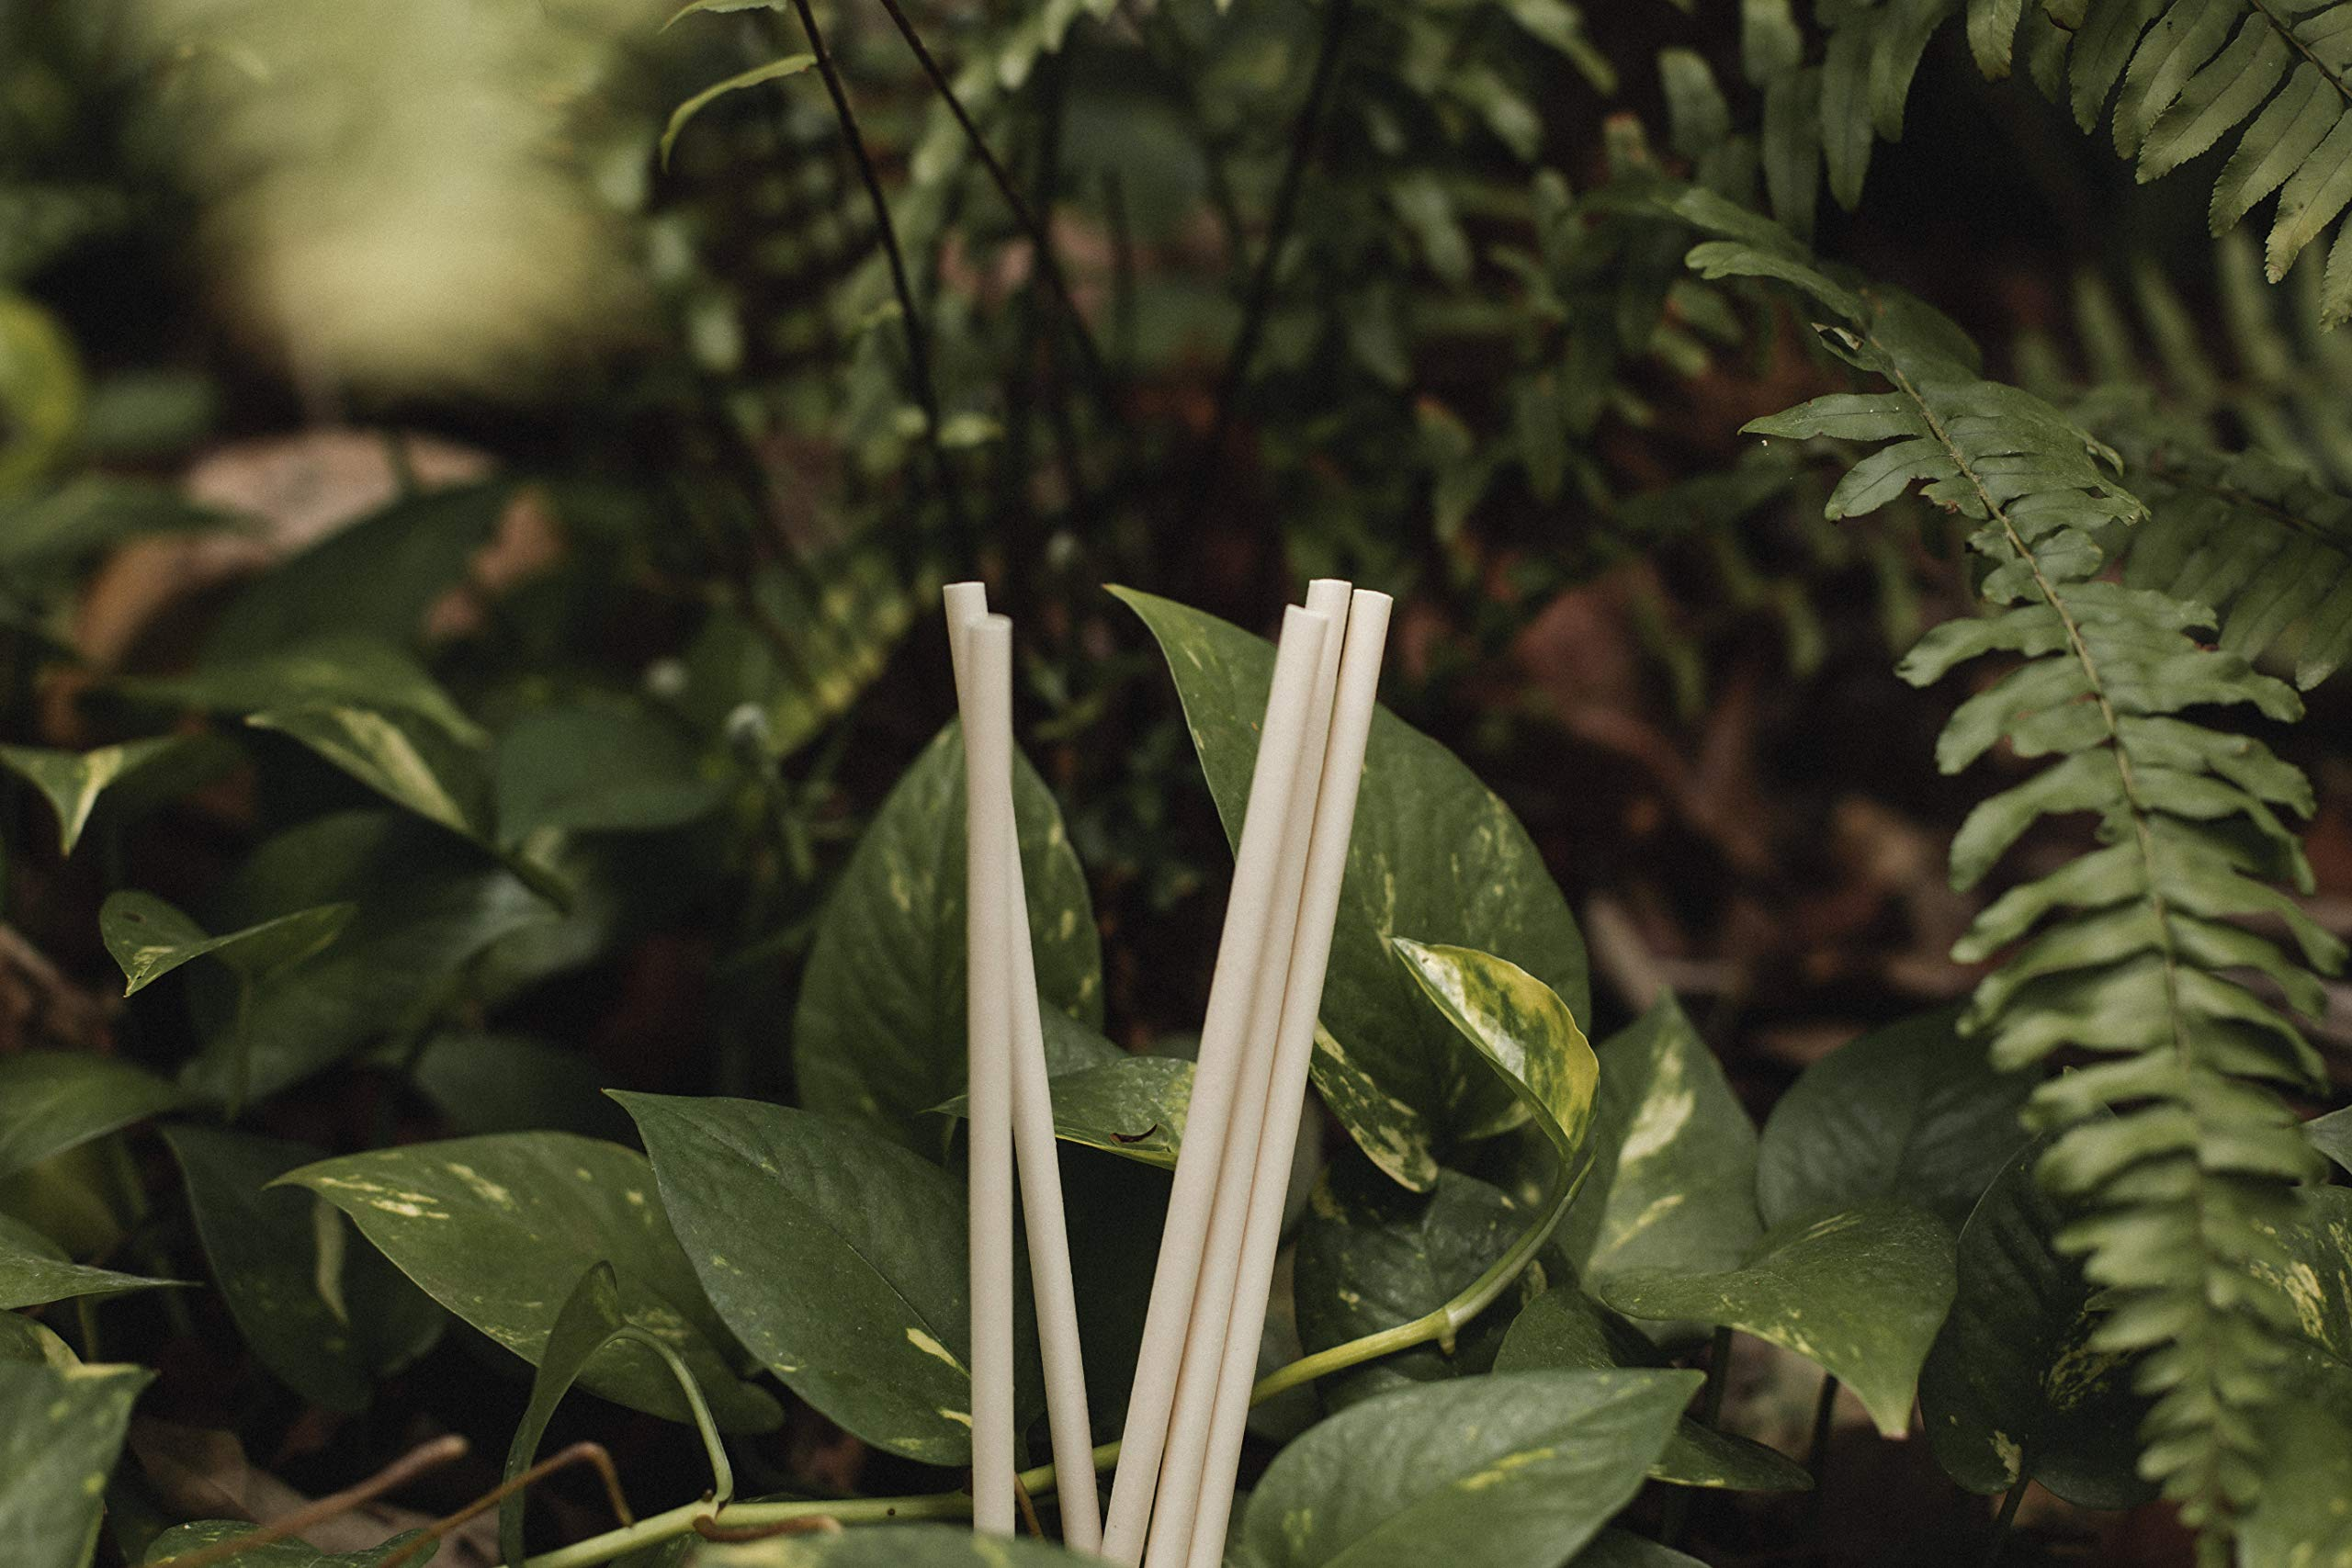 Avocado Seed Straws - Longest Lasting 100% biodegradable Straws - 2000 count, 8.26'' unwrapped by The Avocado Co.